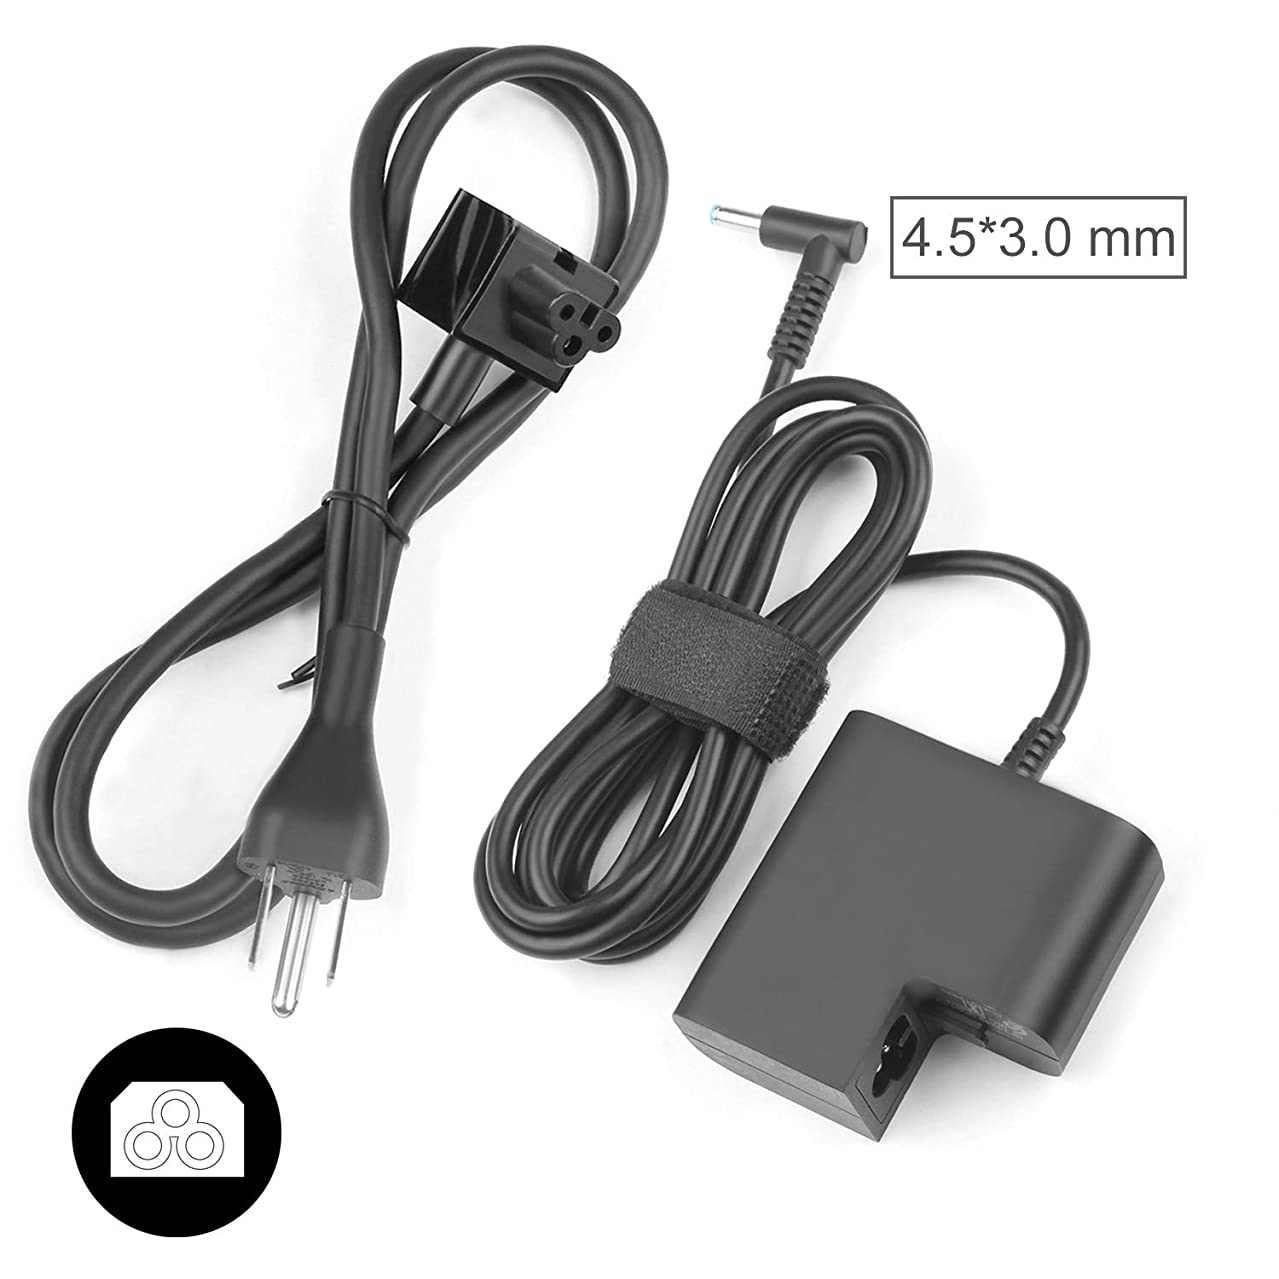 JUYOON 45W EliteBook Charger Power Cord for TPN-LA04 TPN-CA04 TPN-LA03 854116-850 HP Envy x360 15m-bq021dx m6 Elitebook 840 850 830 820 g3 g4 g5 g6 hp 250 255 260 g7 g6 g5 g4 g3